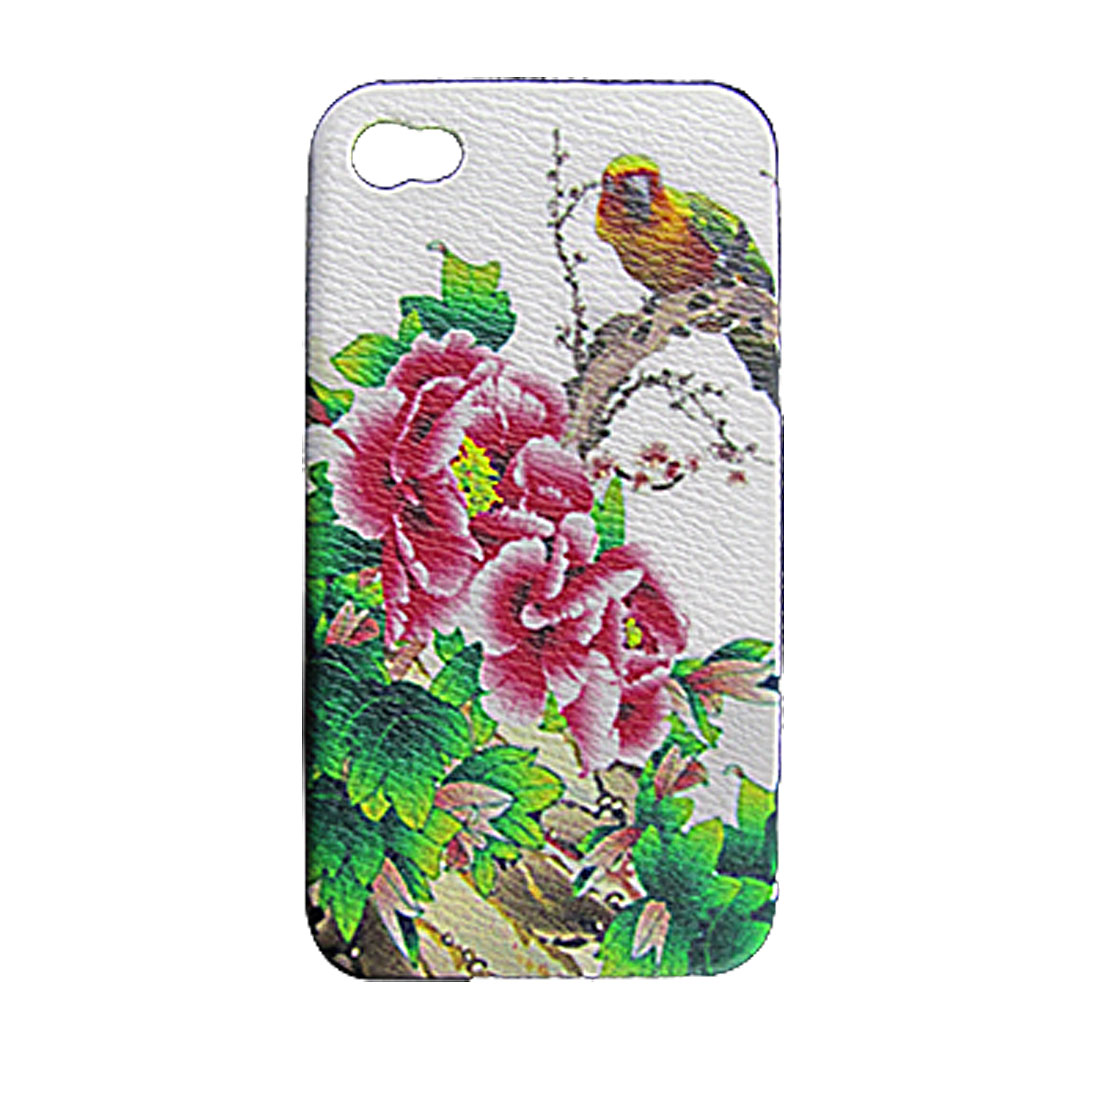 Colorful Flower w Bird Back Shell Faux Leather Coated Plastic Cover for iPhone 4 4G